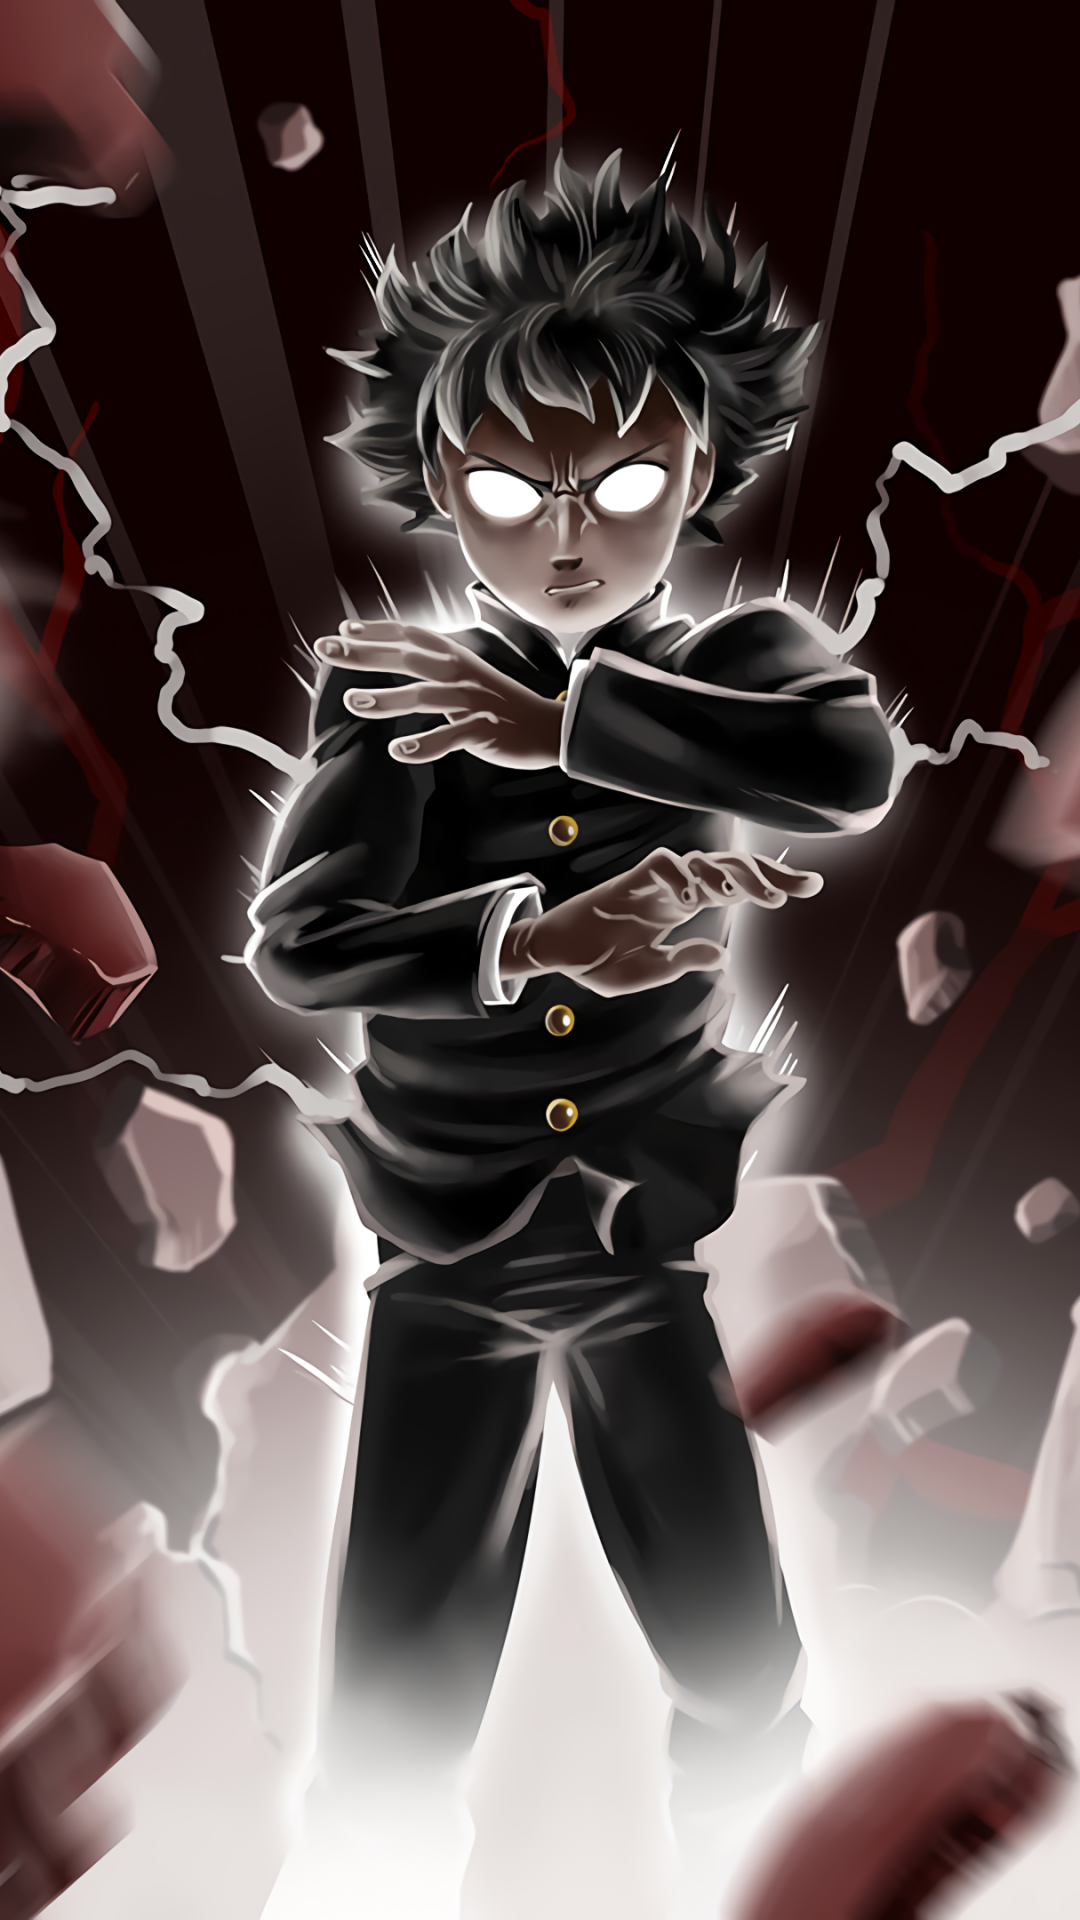 14 Mob Psycho 100 Apple Iphone 6 750x1334 Wallpapers Mobile Abyss